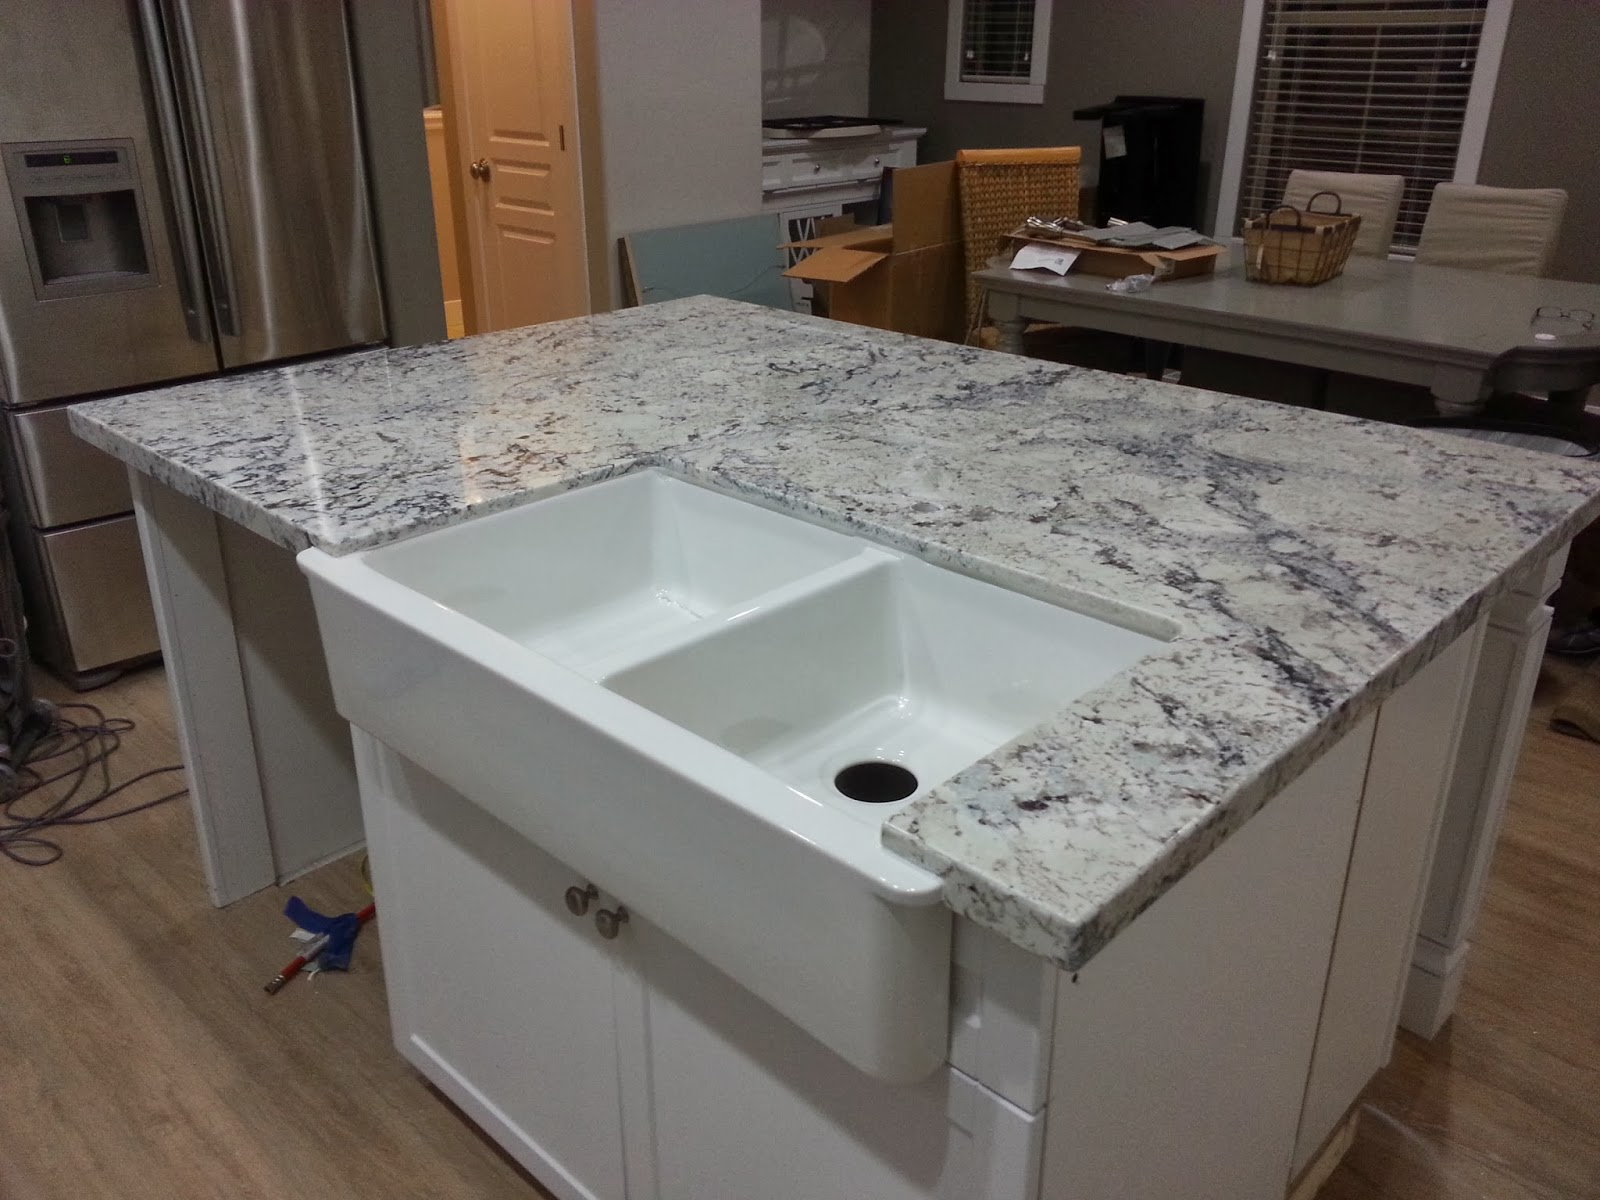 white ice granite with farm sink with images grey granite countertops white ice granite on farmhouse kitchen granite countertops id=44365